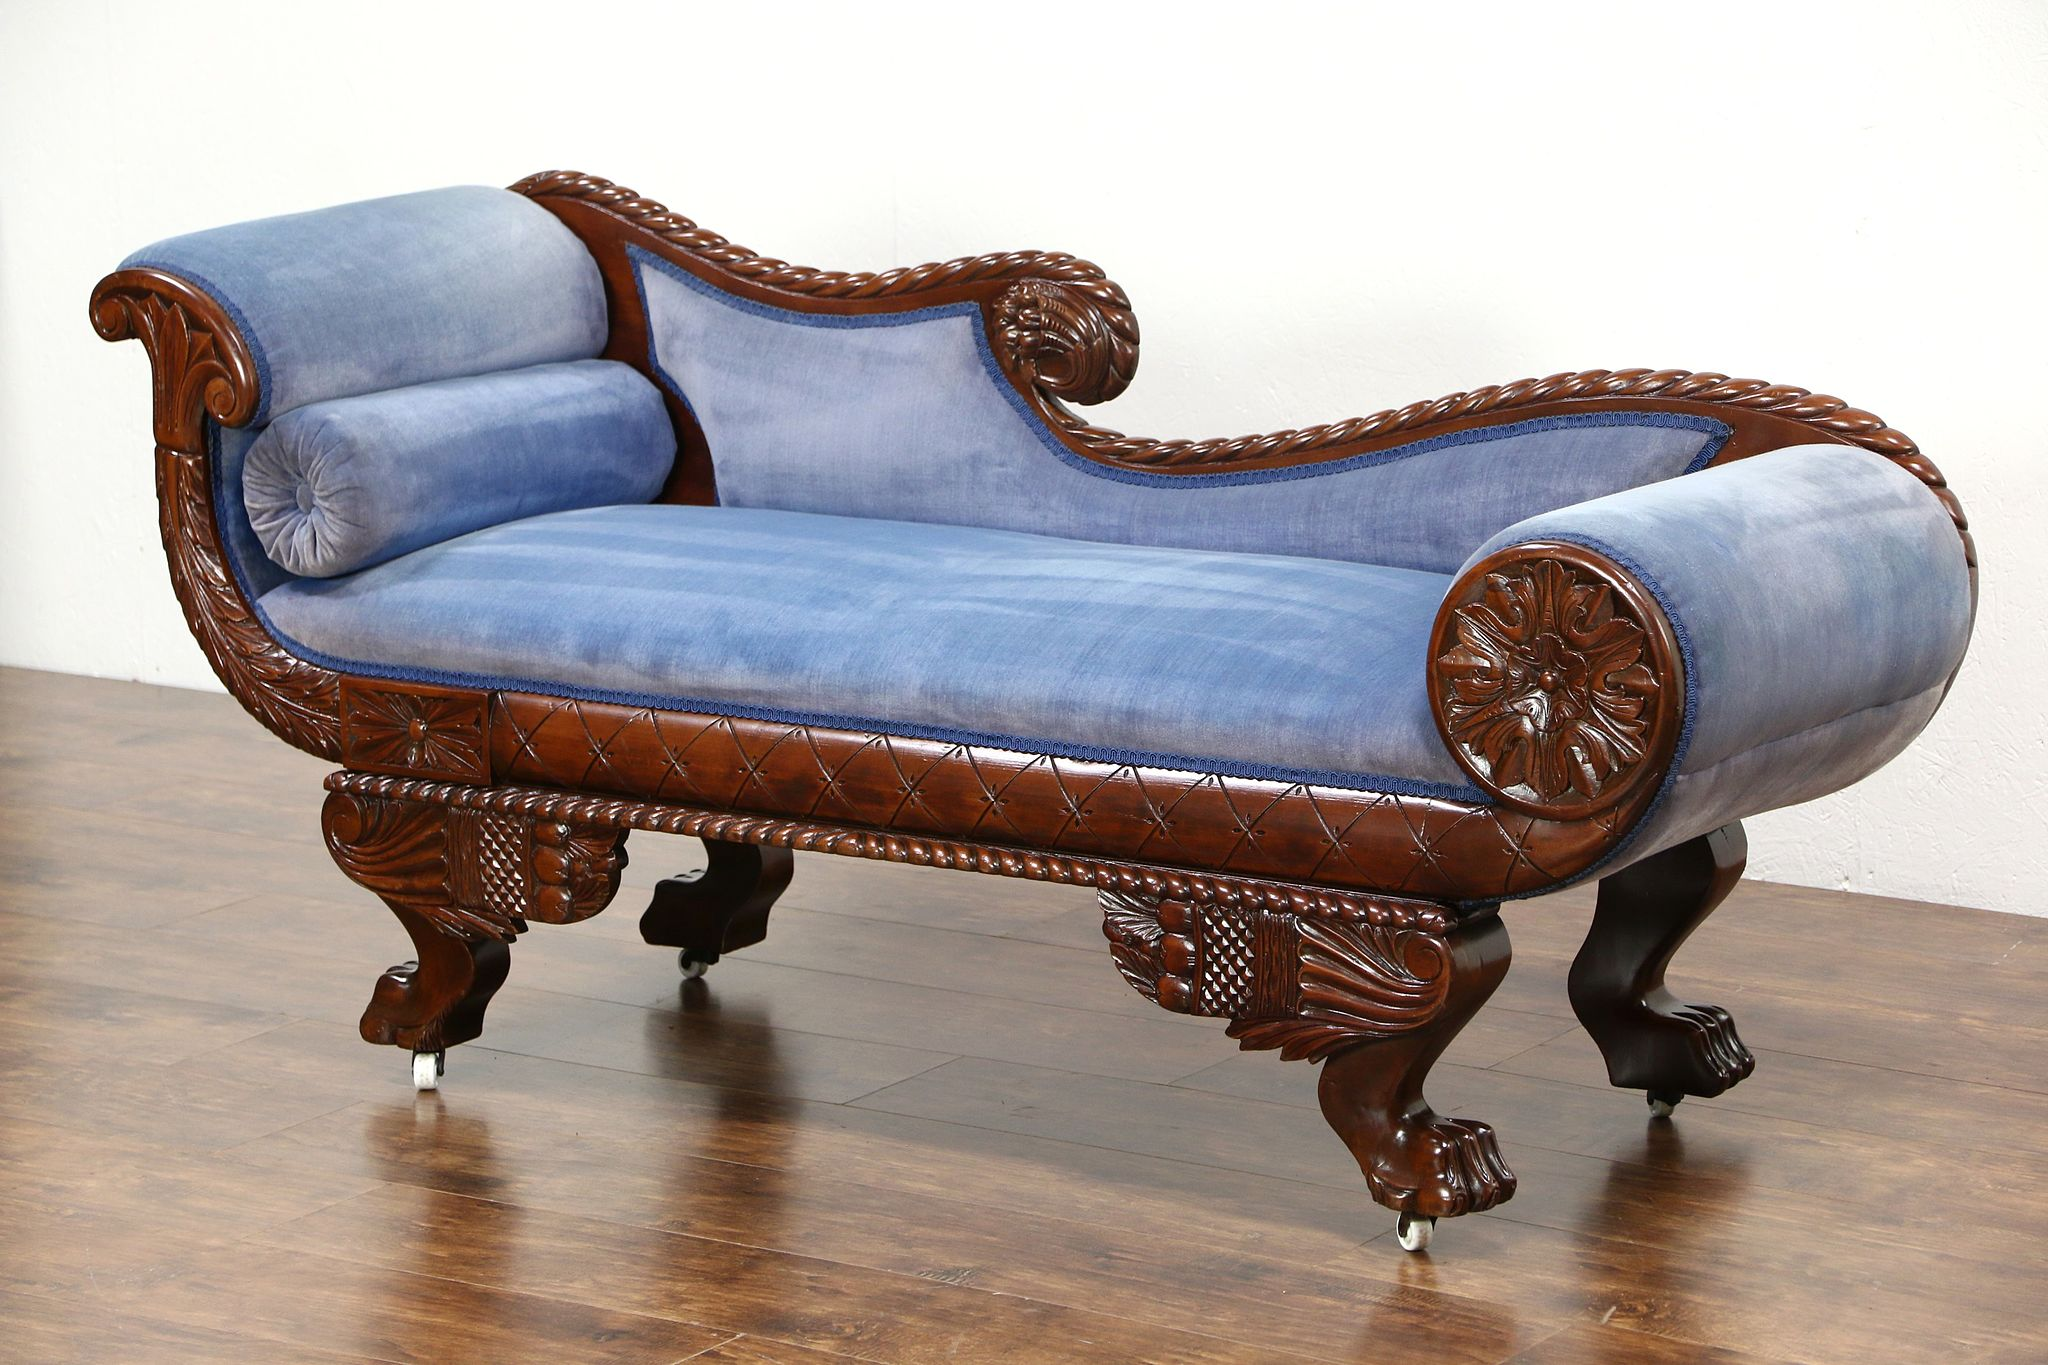 Sold empire 1895 antique chaise recamier lounge or for Antique chaise lounge sofa